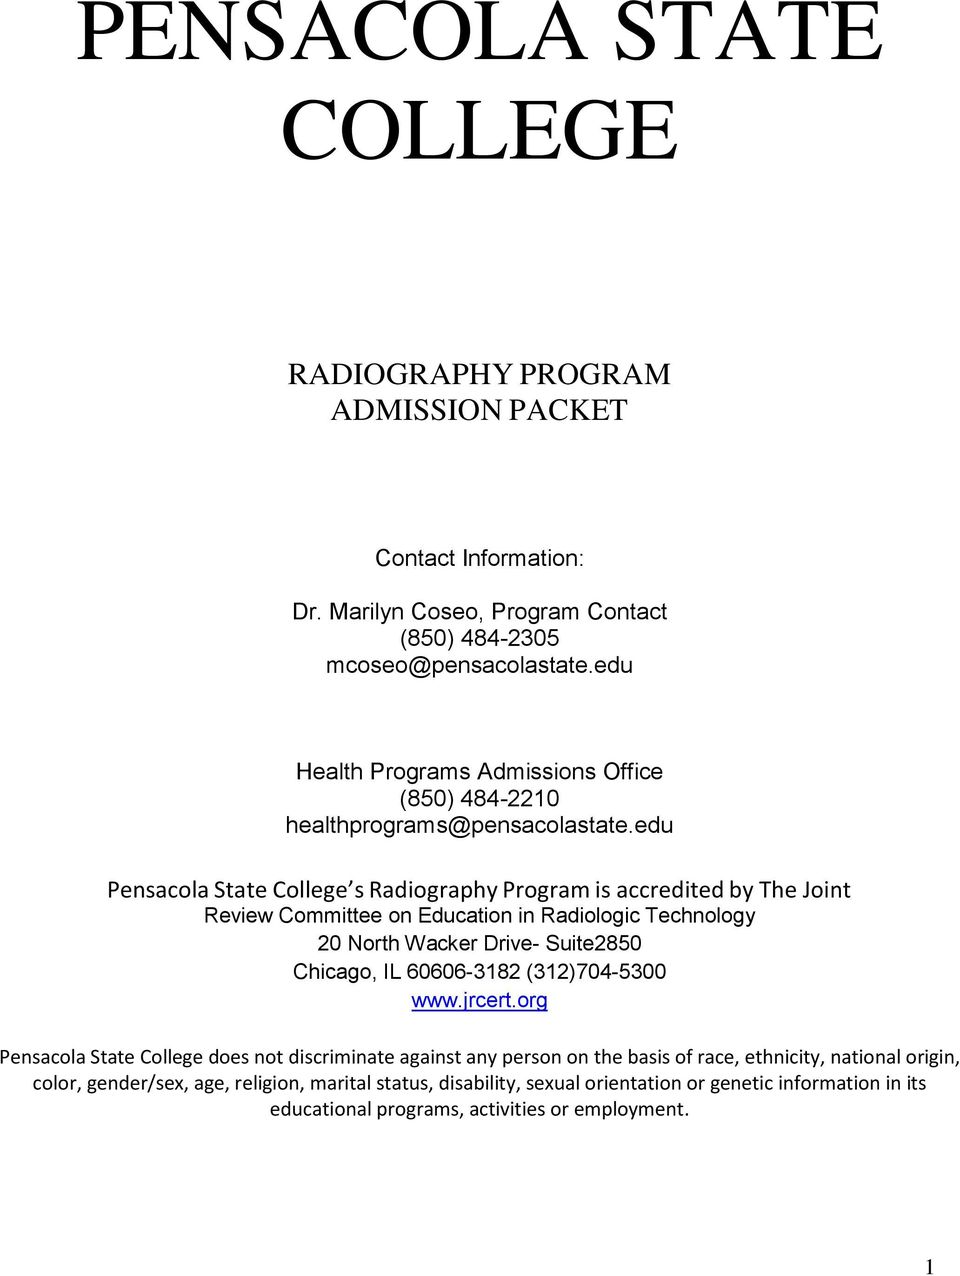 edu Pensacola State College s Radiography Program is accredited by The Joint Review Committee on Education in Radiologic Technology 20 North Wacker Drive- Suite2850 Chicago, IL